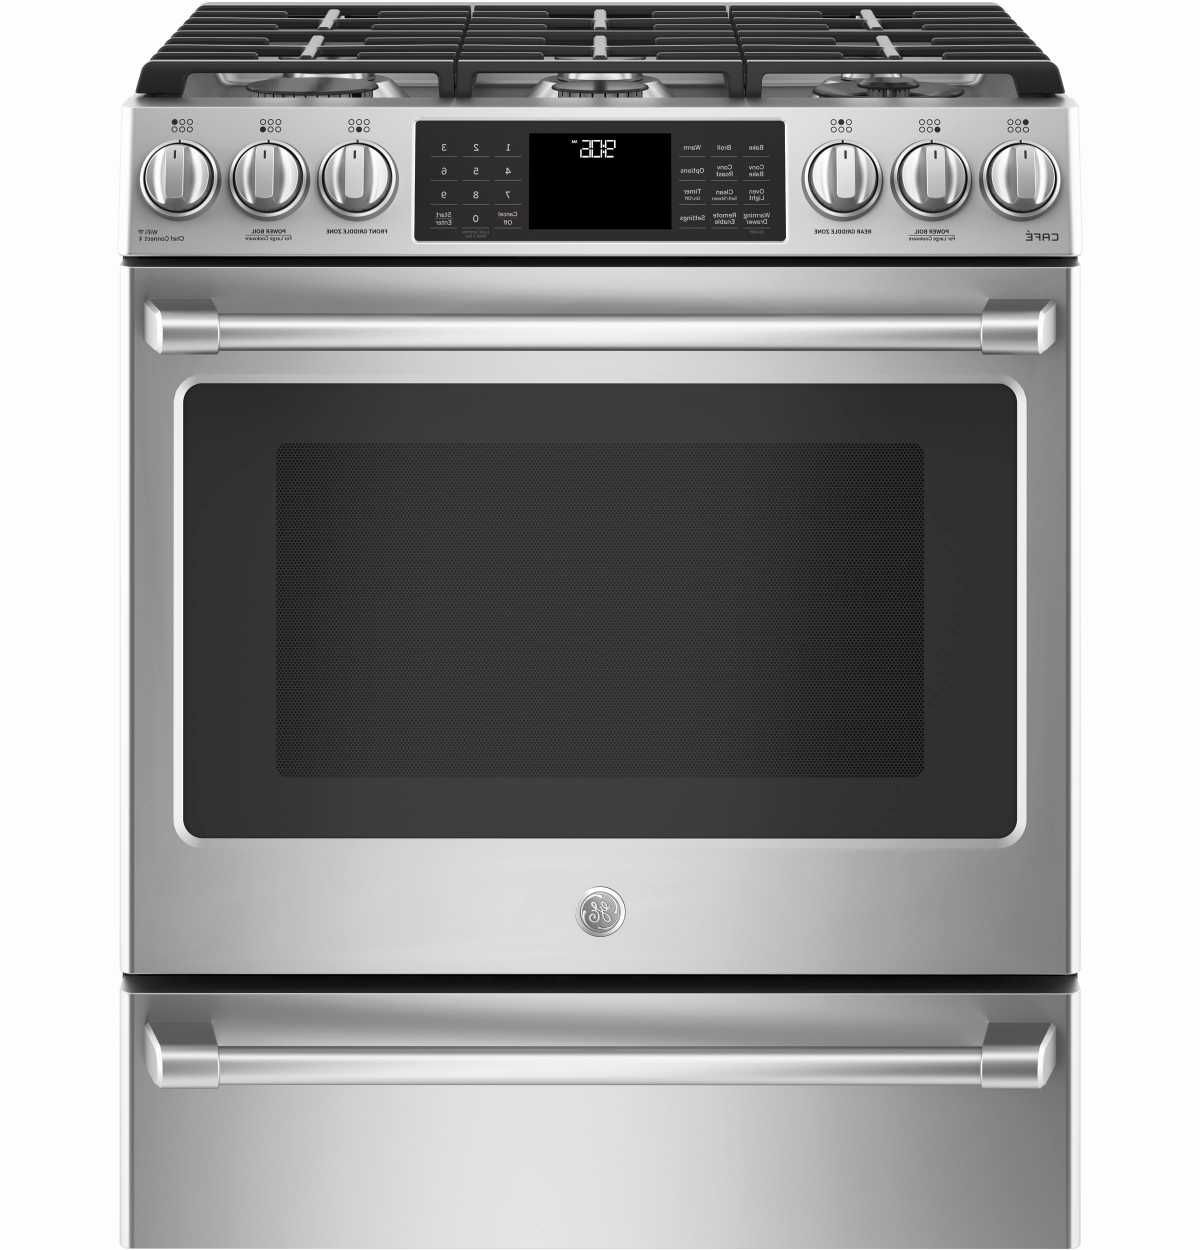 Unique appliance repair new whirlpool washer error codes kitchen